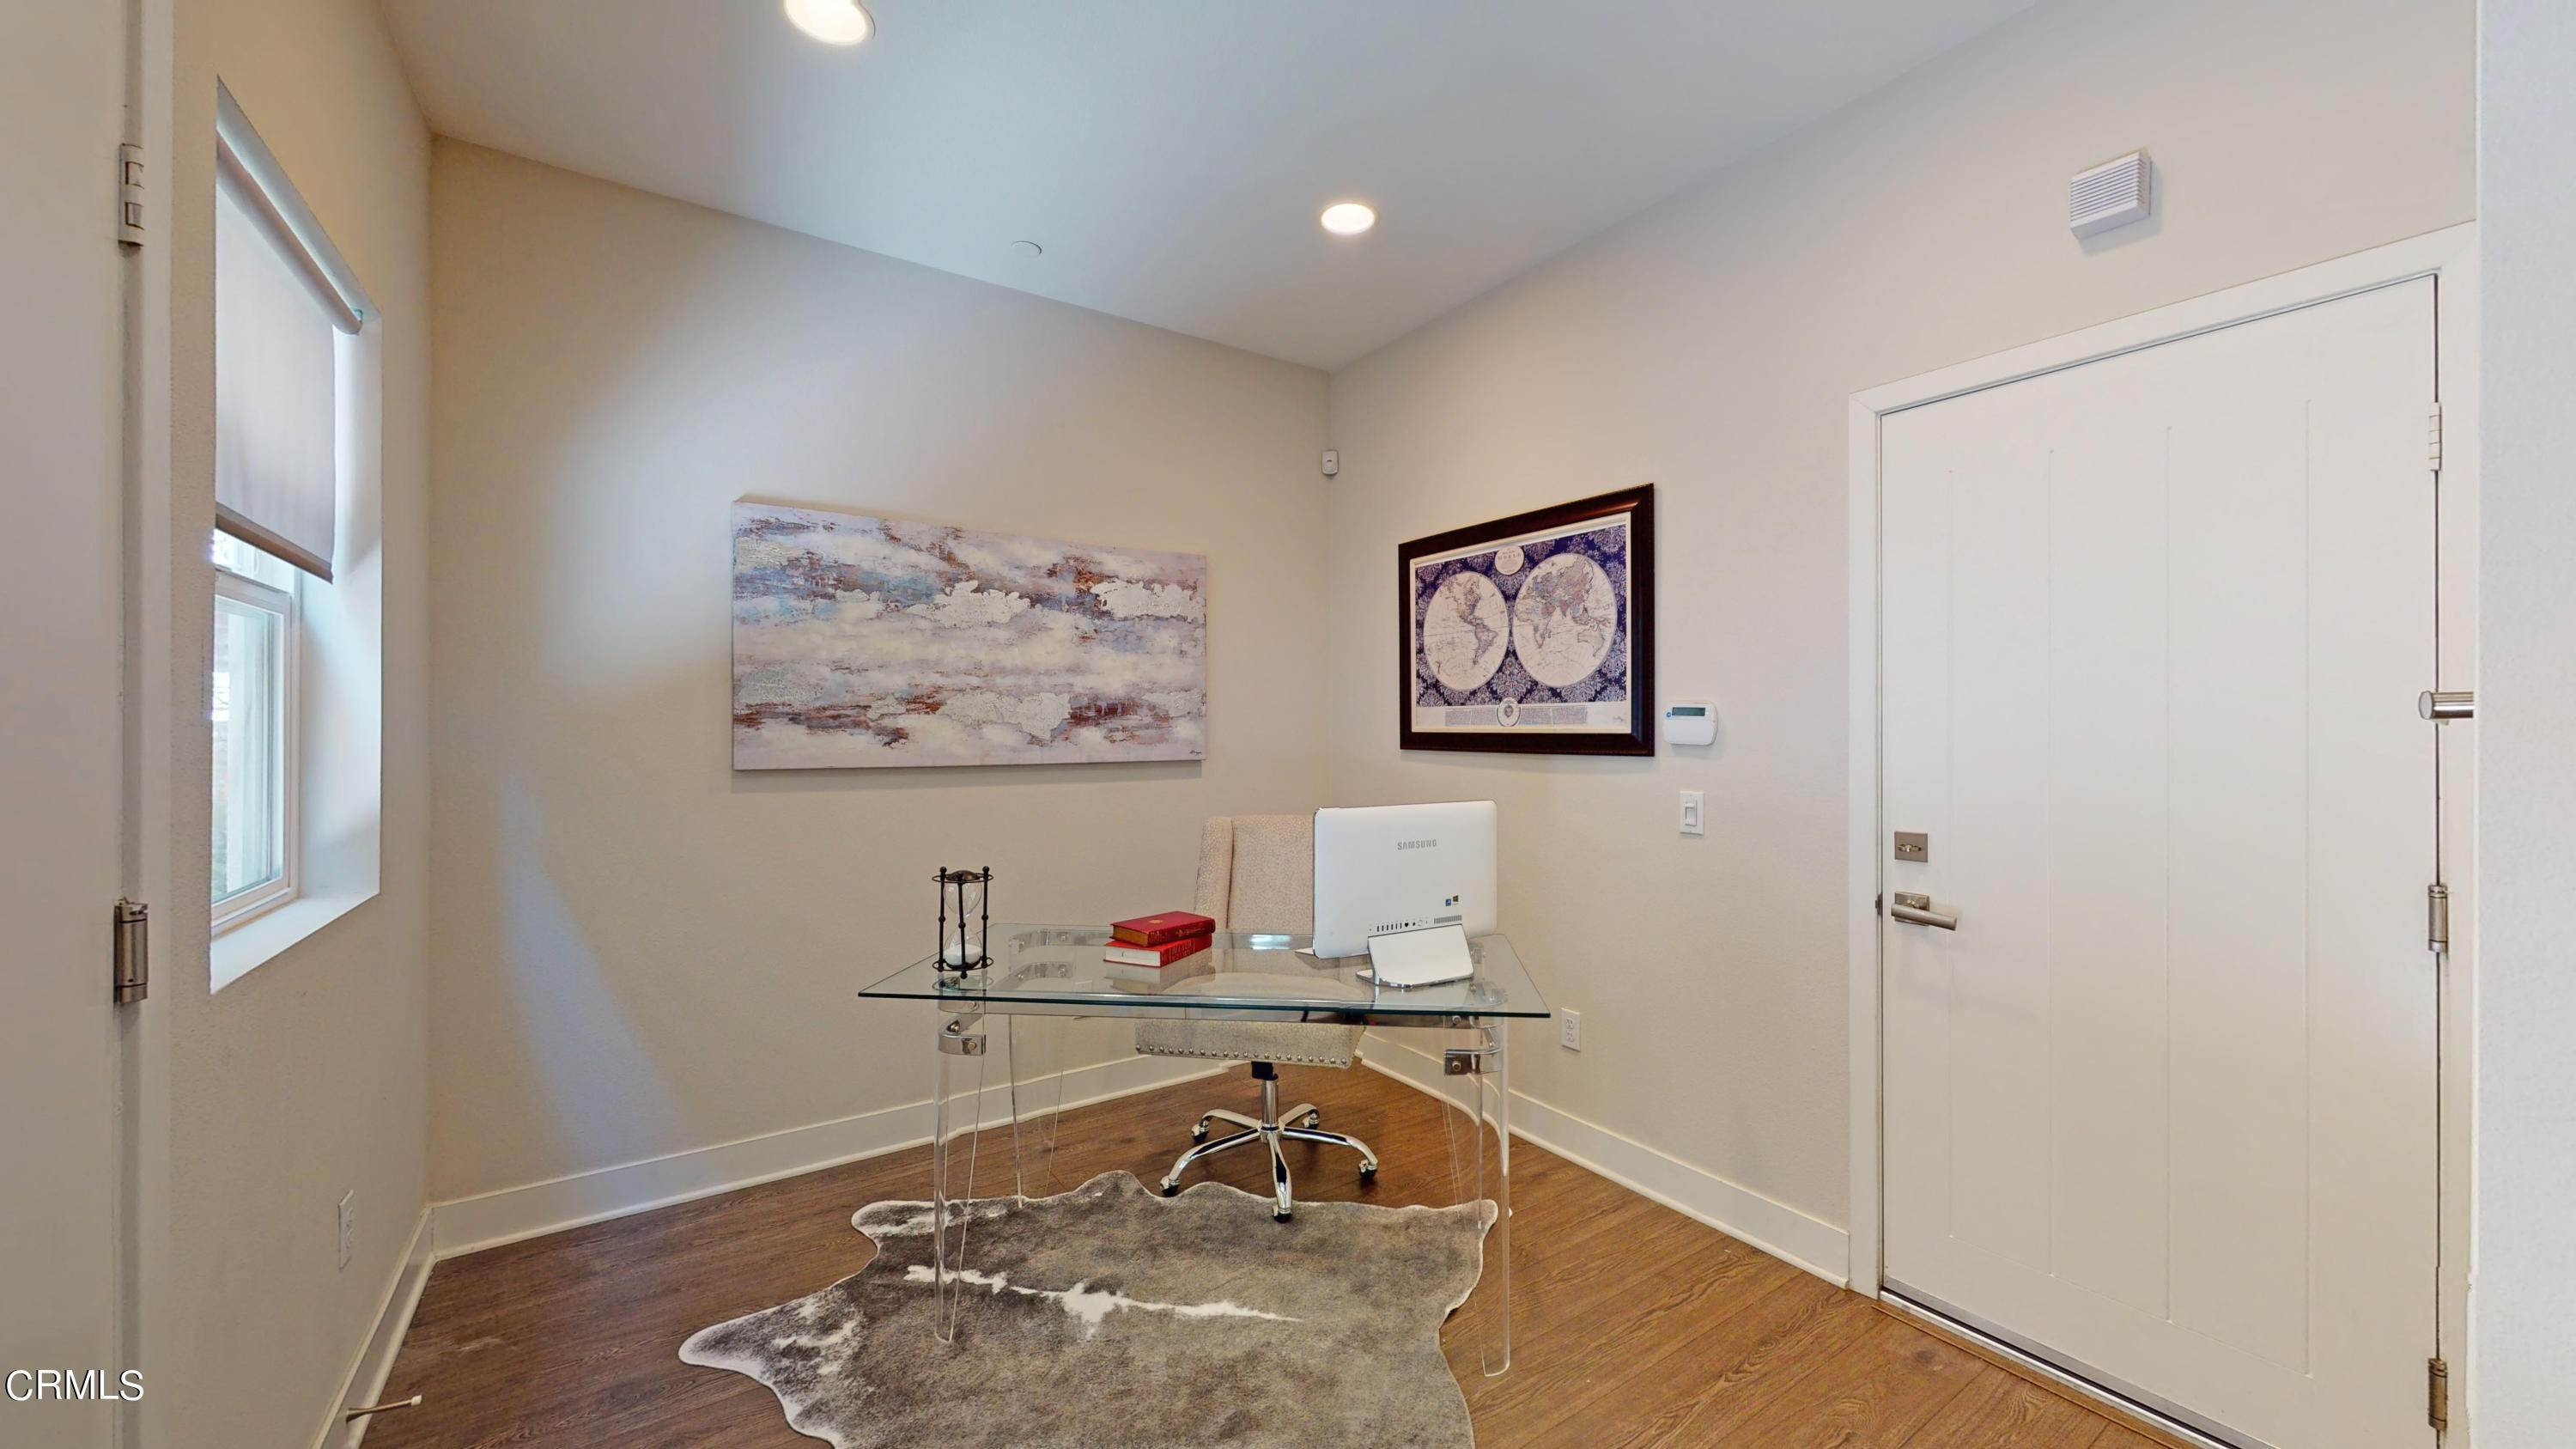 6. townhouses for Sale at 2753 Waverly Drive 302 #302 2753 Waverly Drive 302 Los Angeles, California 90039 United States